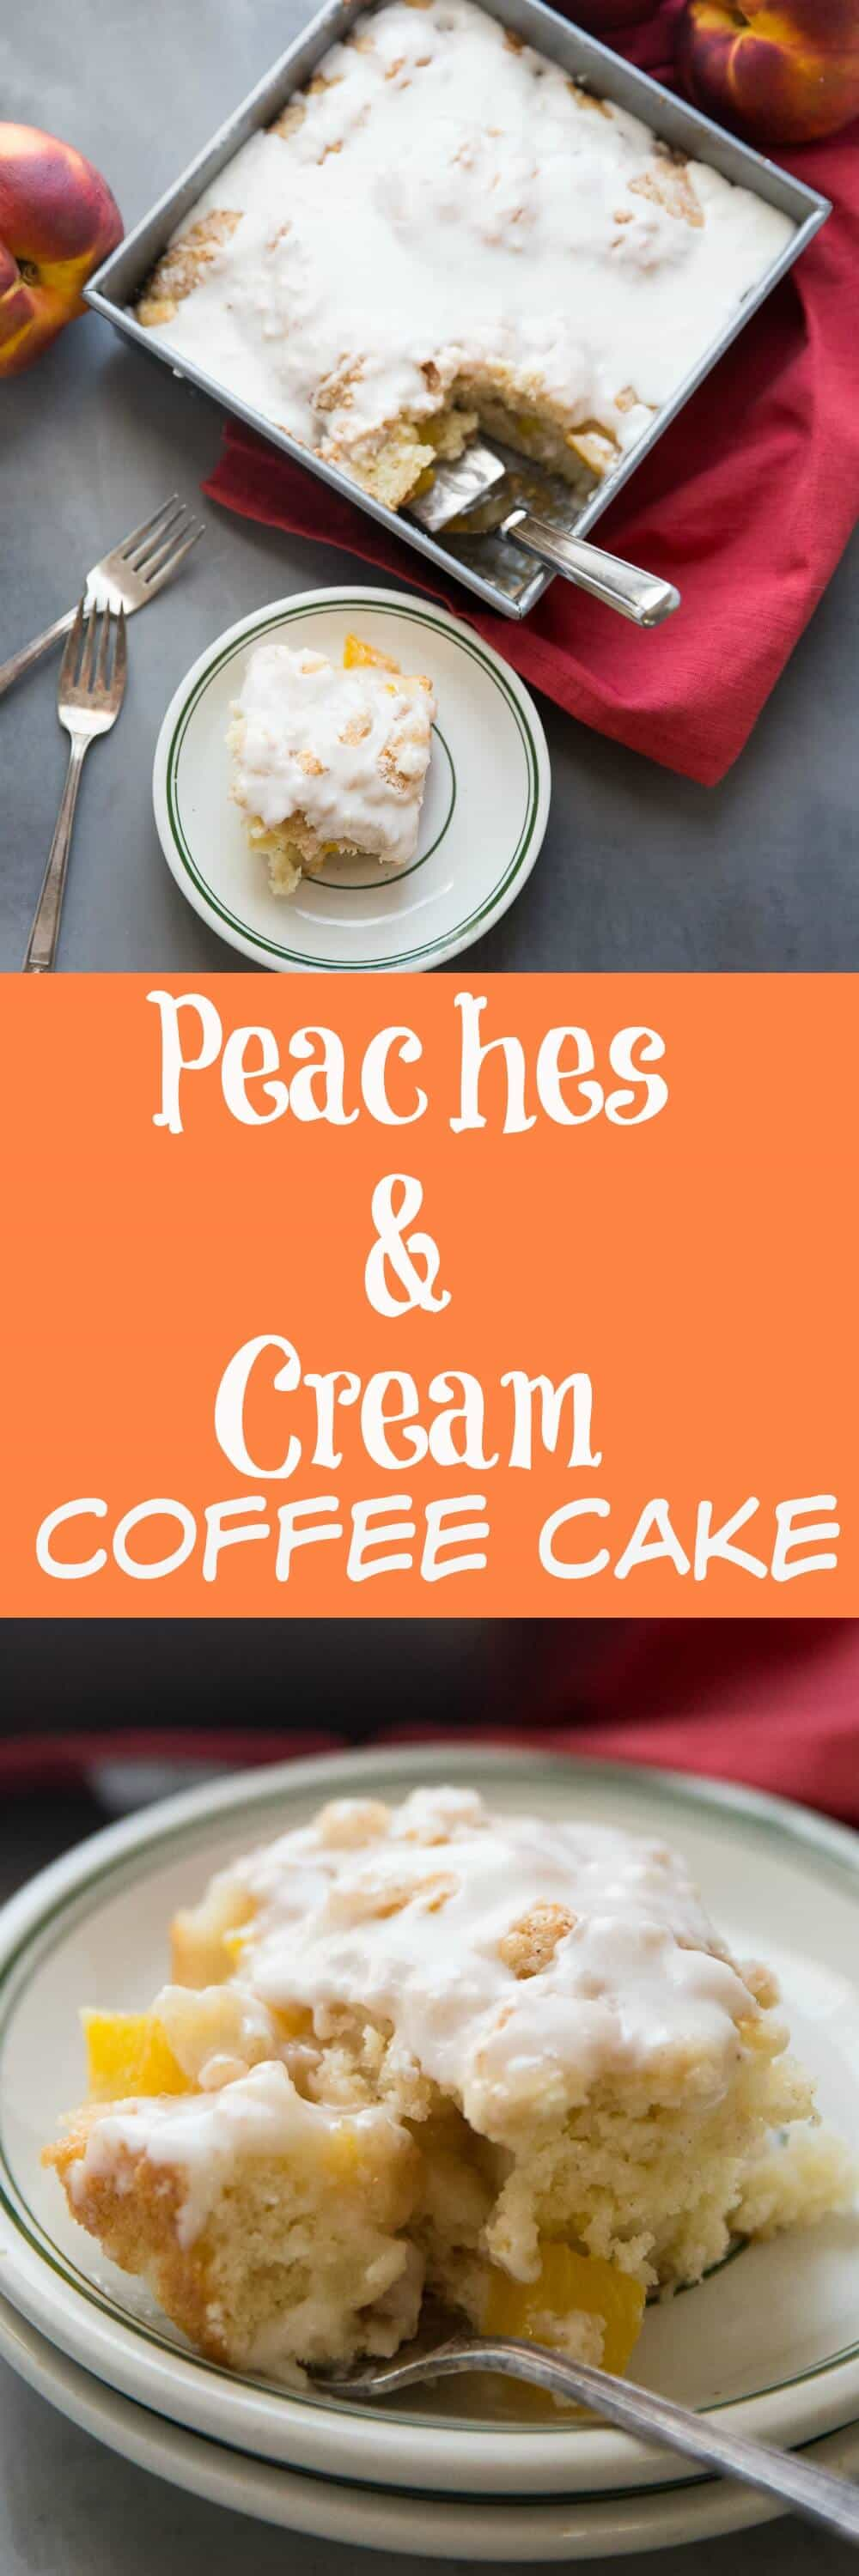 Grab fresh peaches and bake up this simple peaches and cream coffee cake. This easy dessert takes the classic combo and turns it into a summery treat that can be enjoyed any time of day!